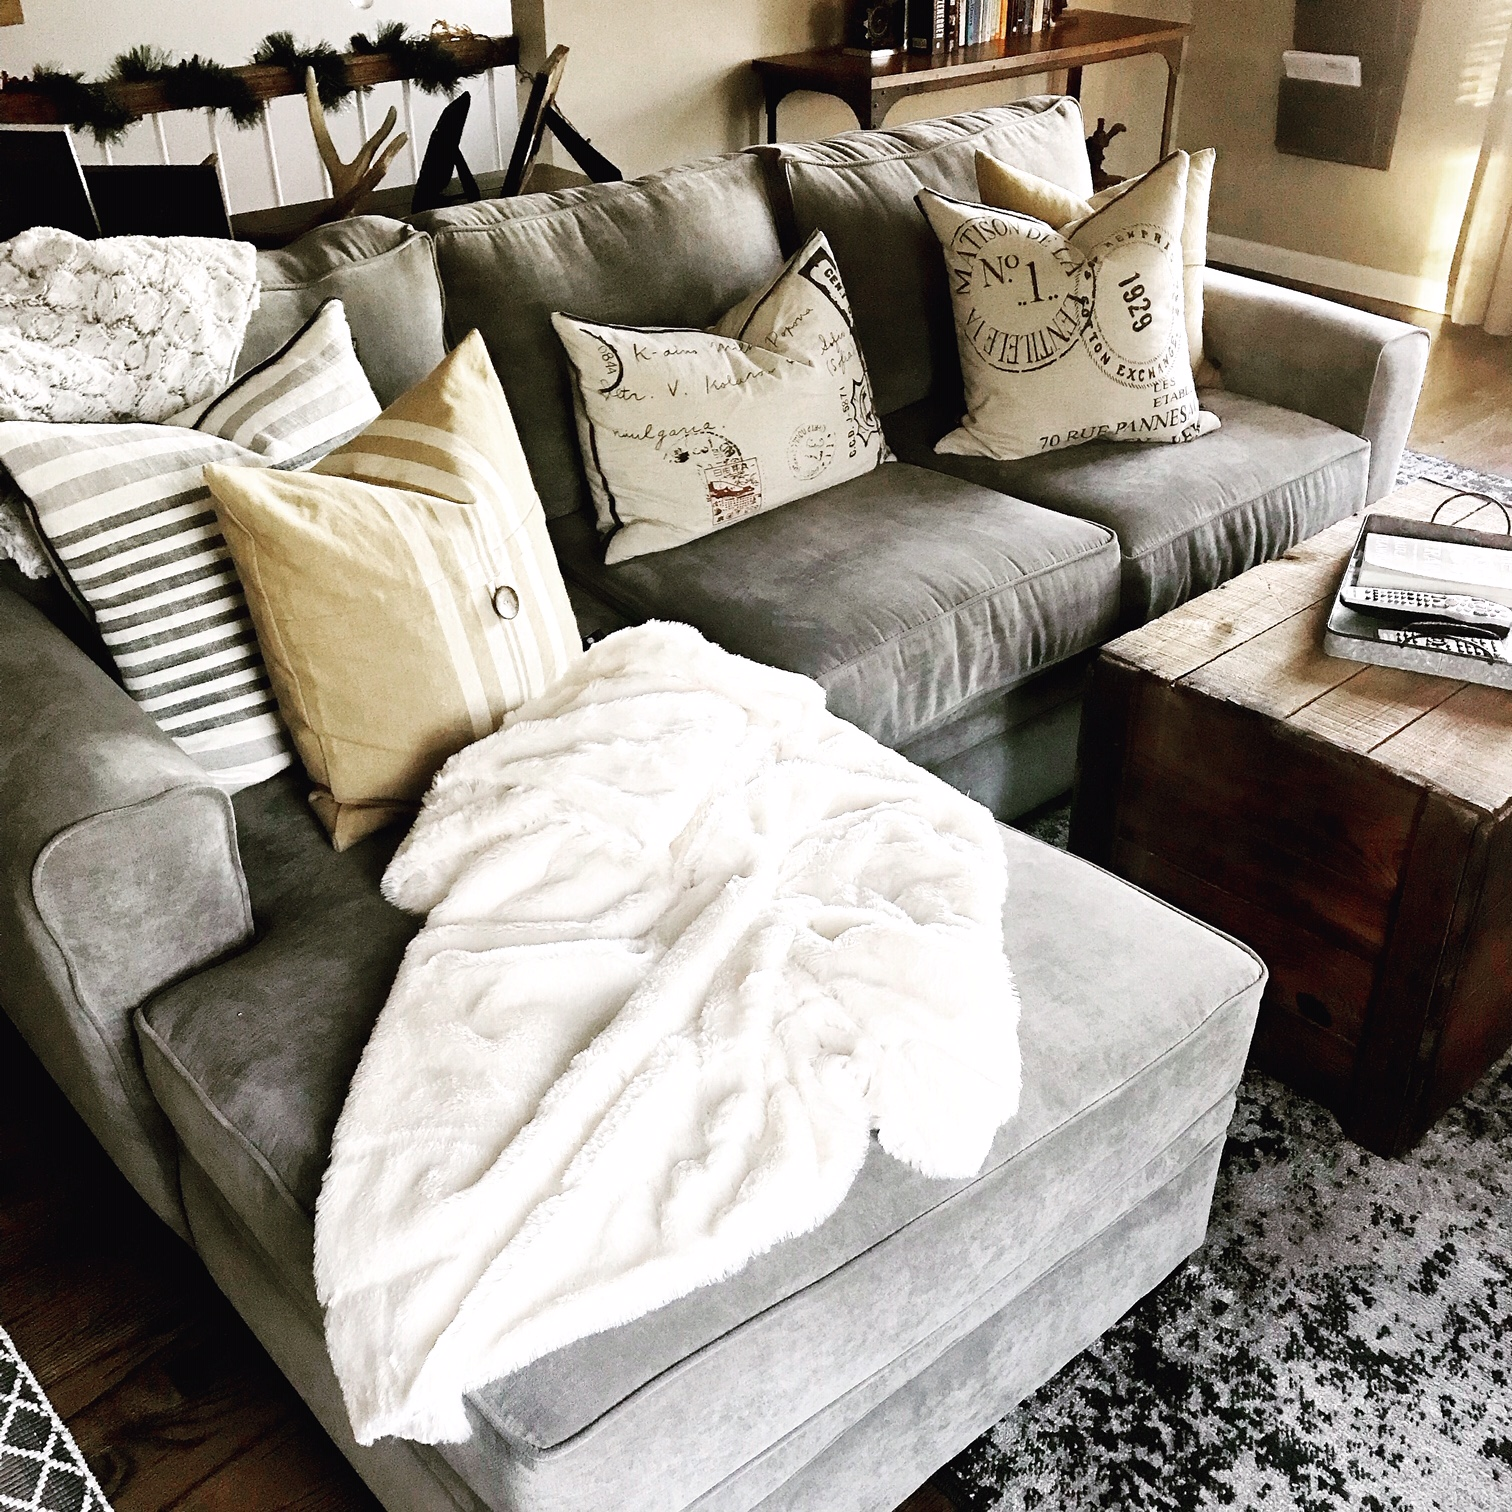 How Many Pillows Pillow Combinations For Beds Couches Sectionals And Chairs The Decor Formula